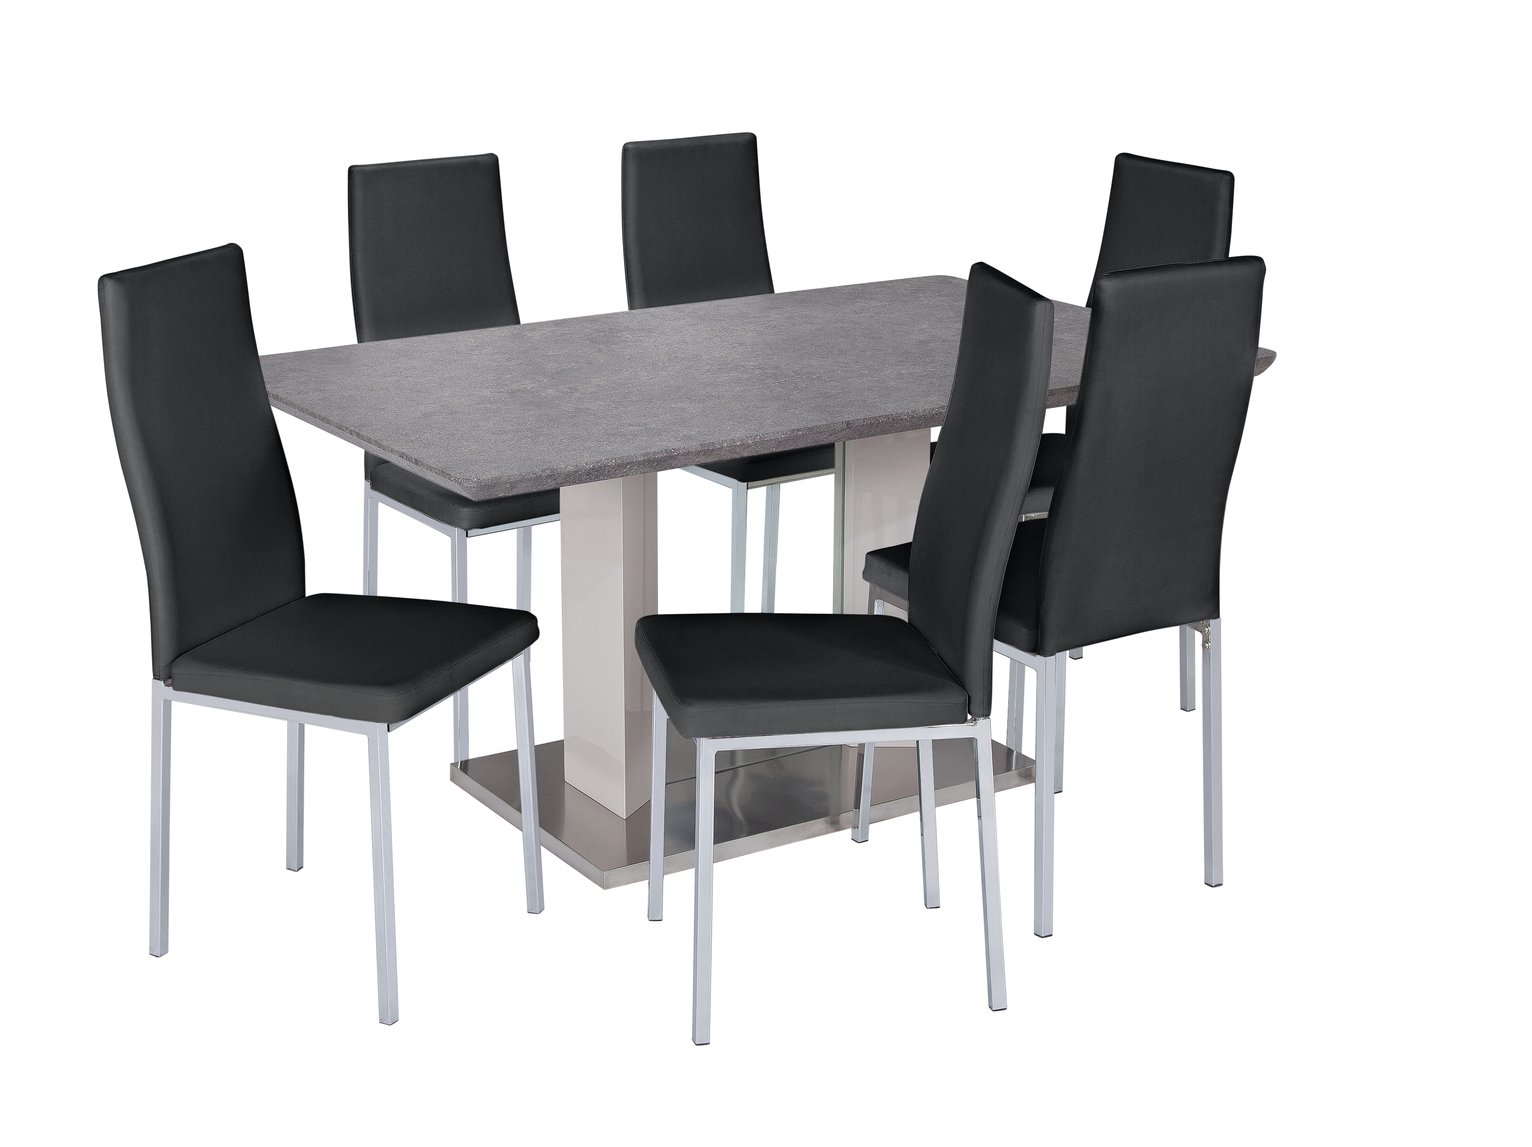 Argos Home Dalston Granite Table and 6 Chairs review